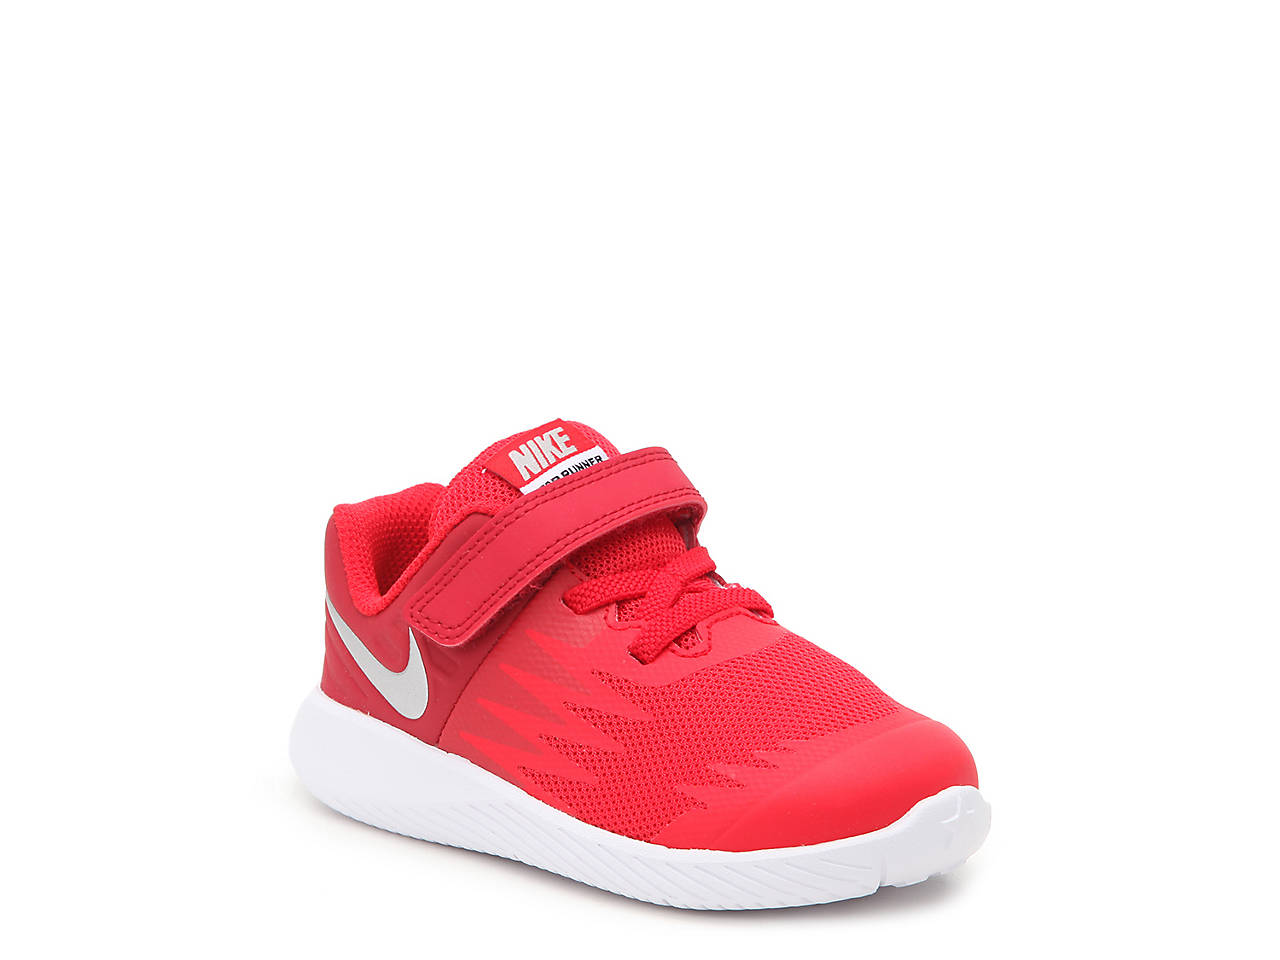 new arrival f6c14 d3863 Star Runner Sneaker - Kids'